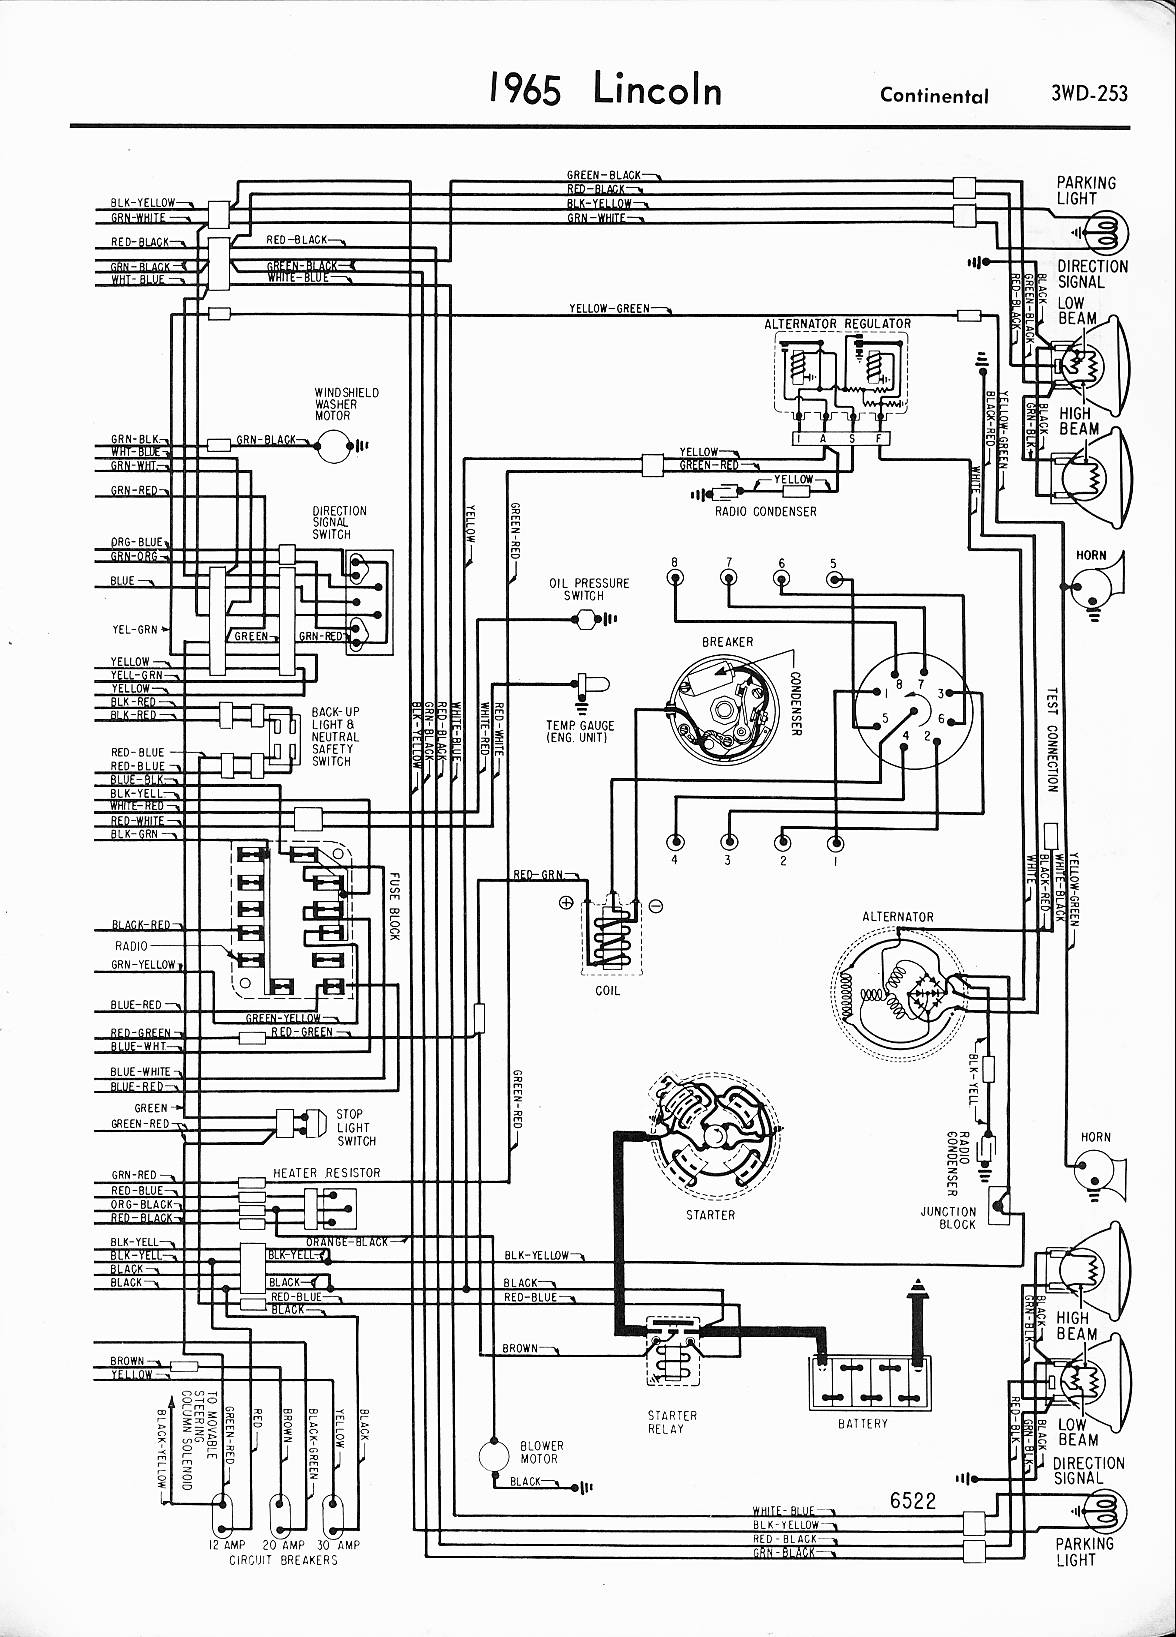 2012 Corvette 7 0 Starter Wiring Diagram